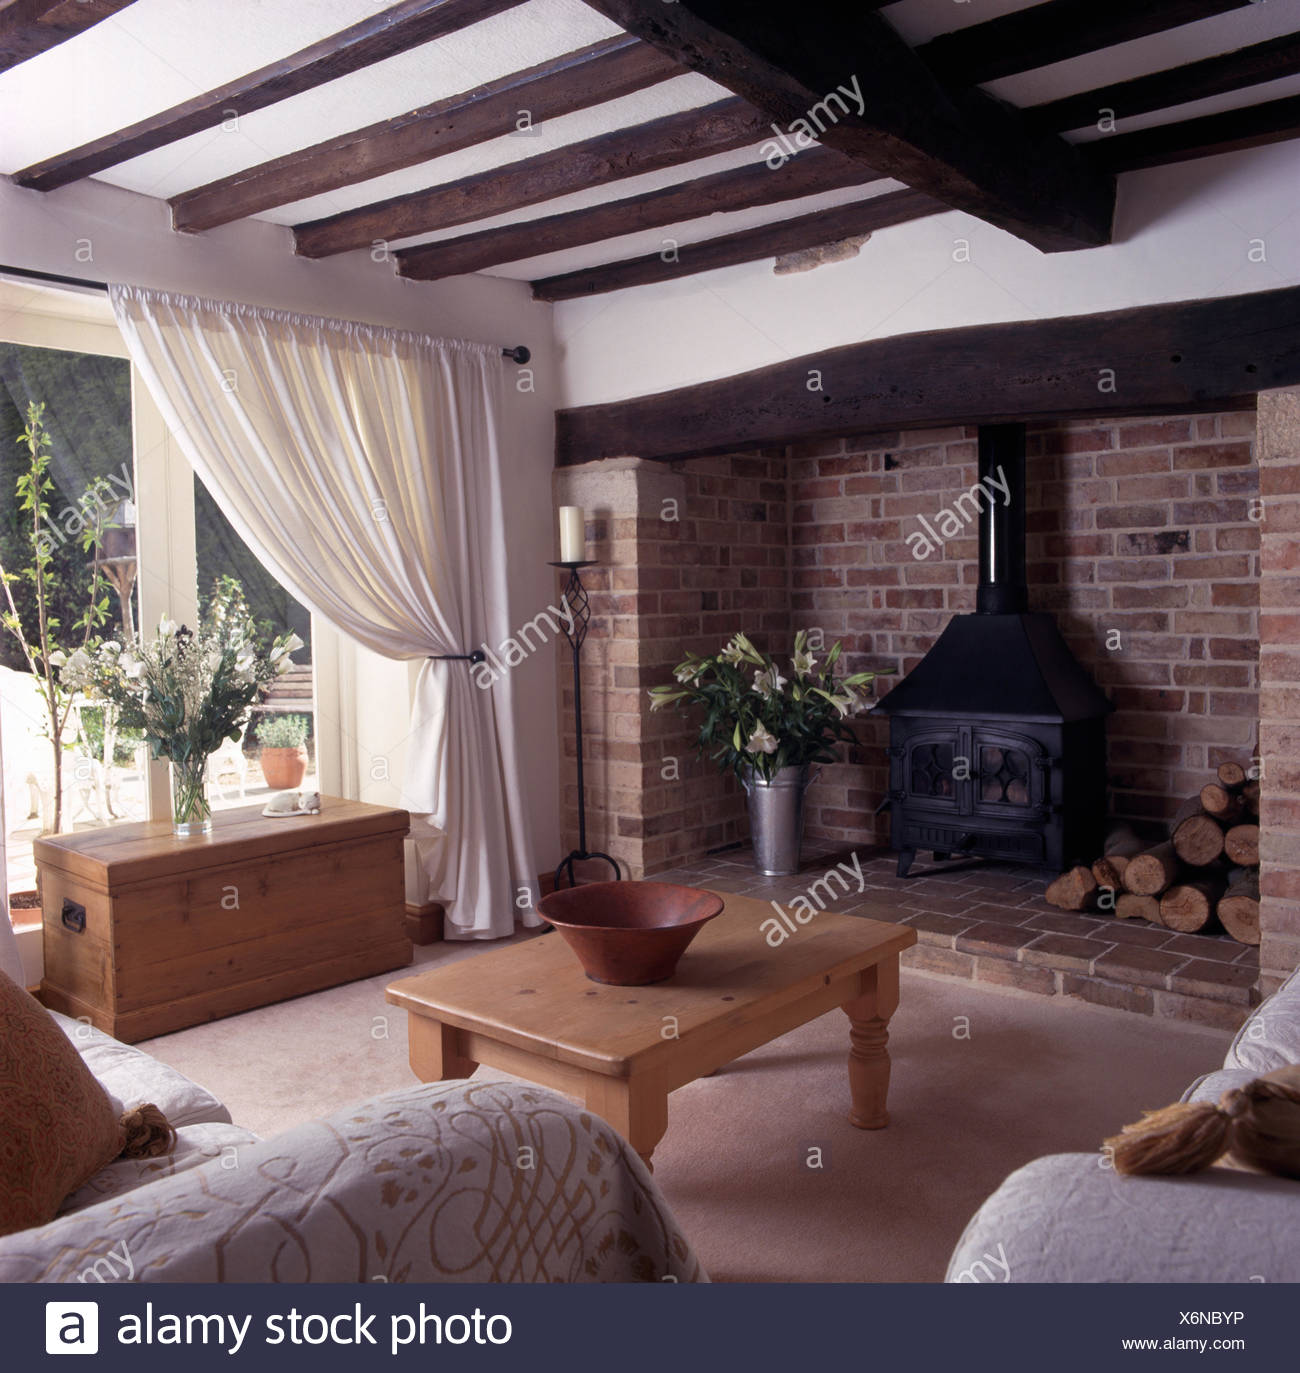 Wood Burning Stove In A Beamed Country Sitting Room With A Pine Chest In  Front Of Glass Doors With White Curtains